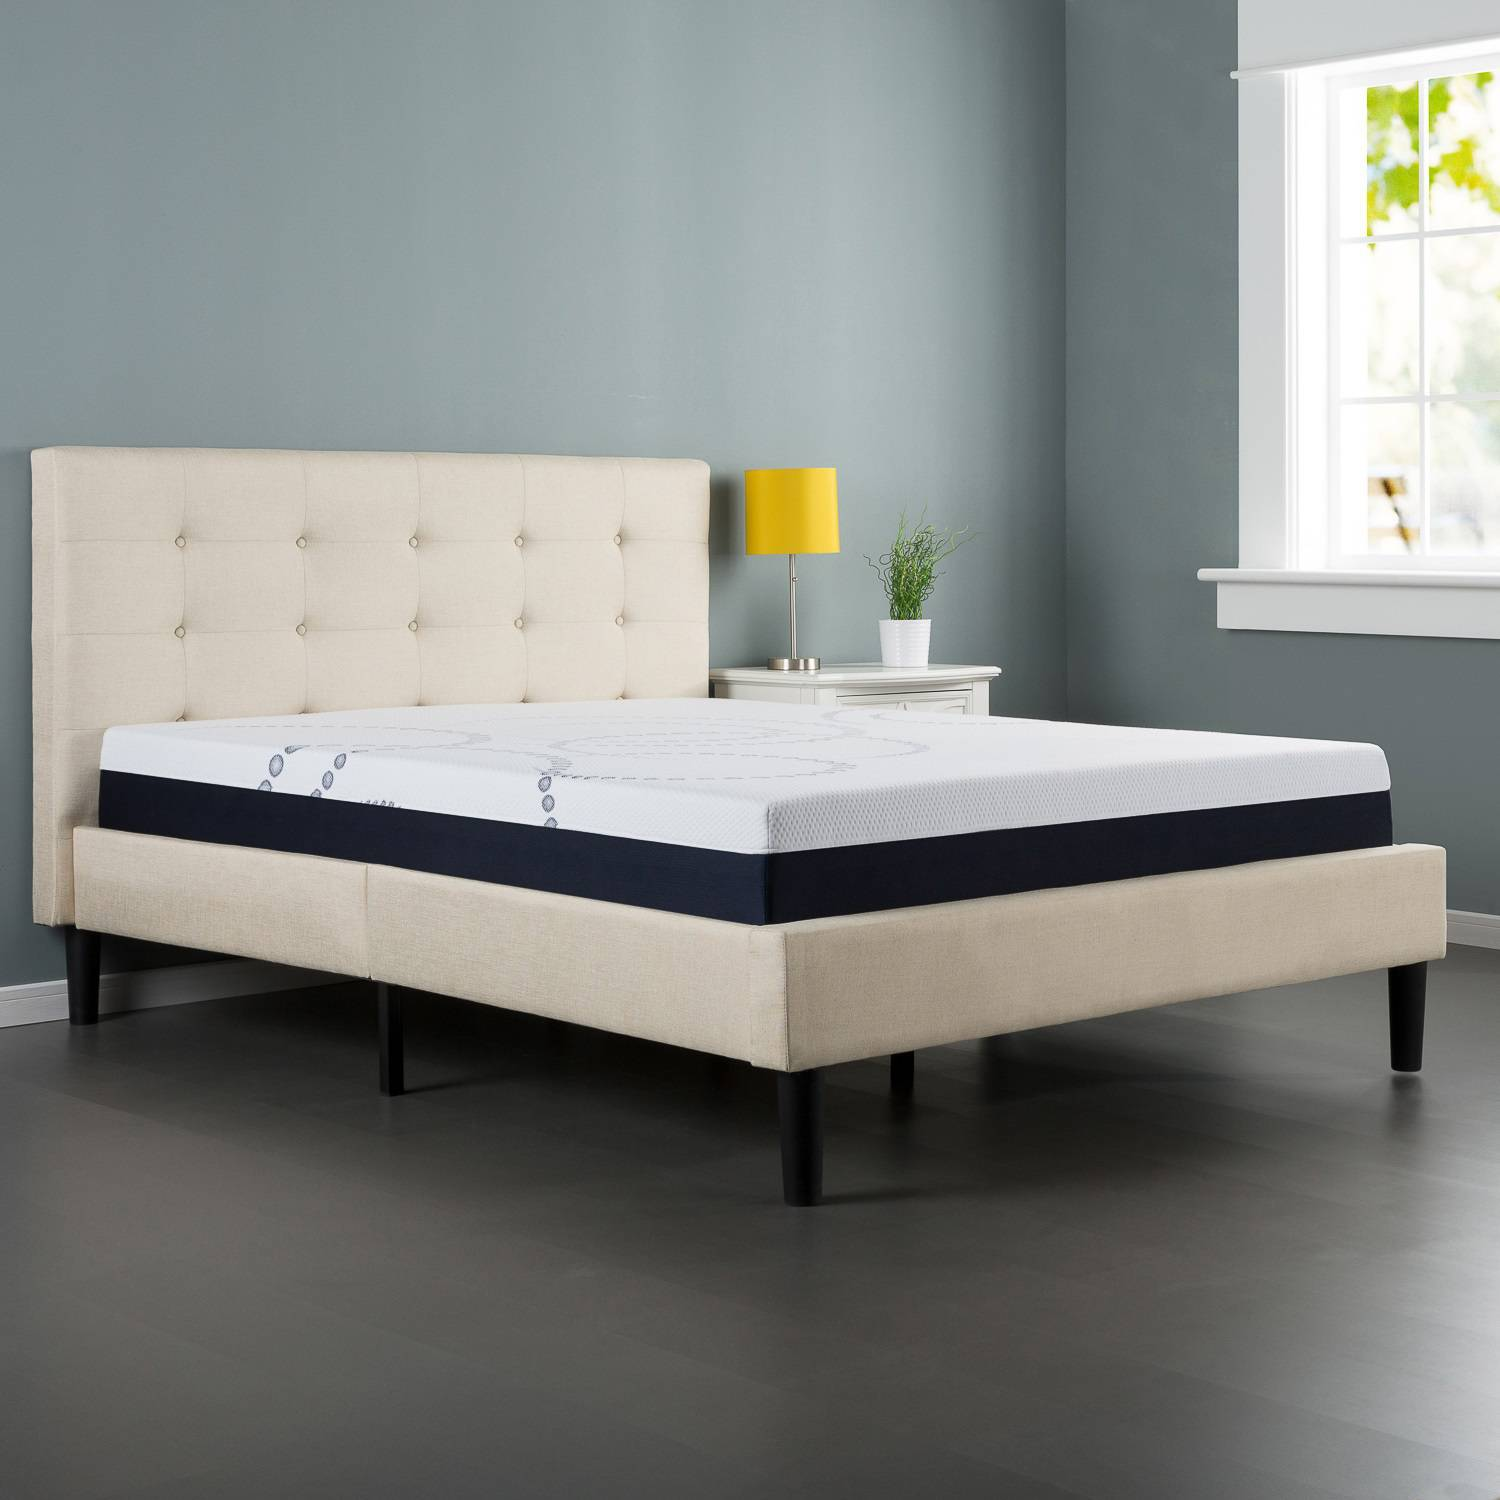 zinus upholstered button tufted platform bed with headboard and wooden slats walmartcom